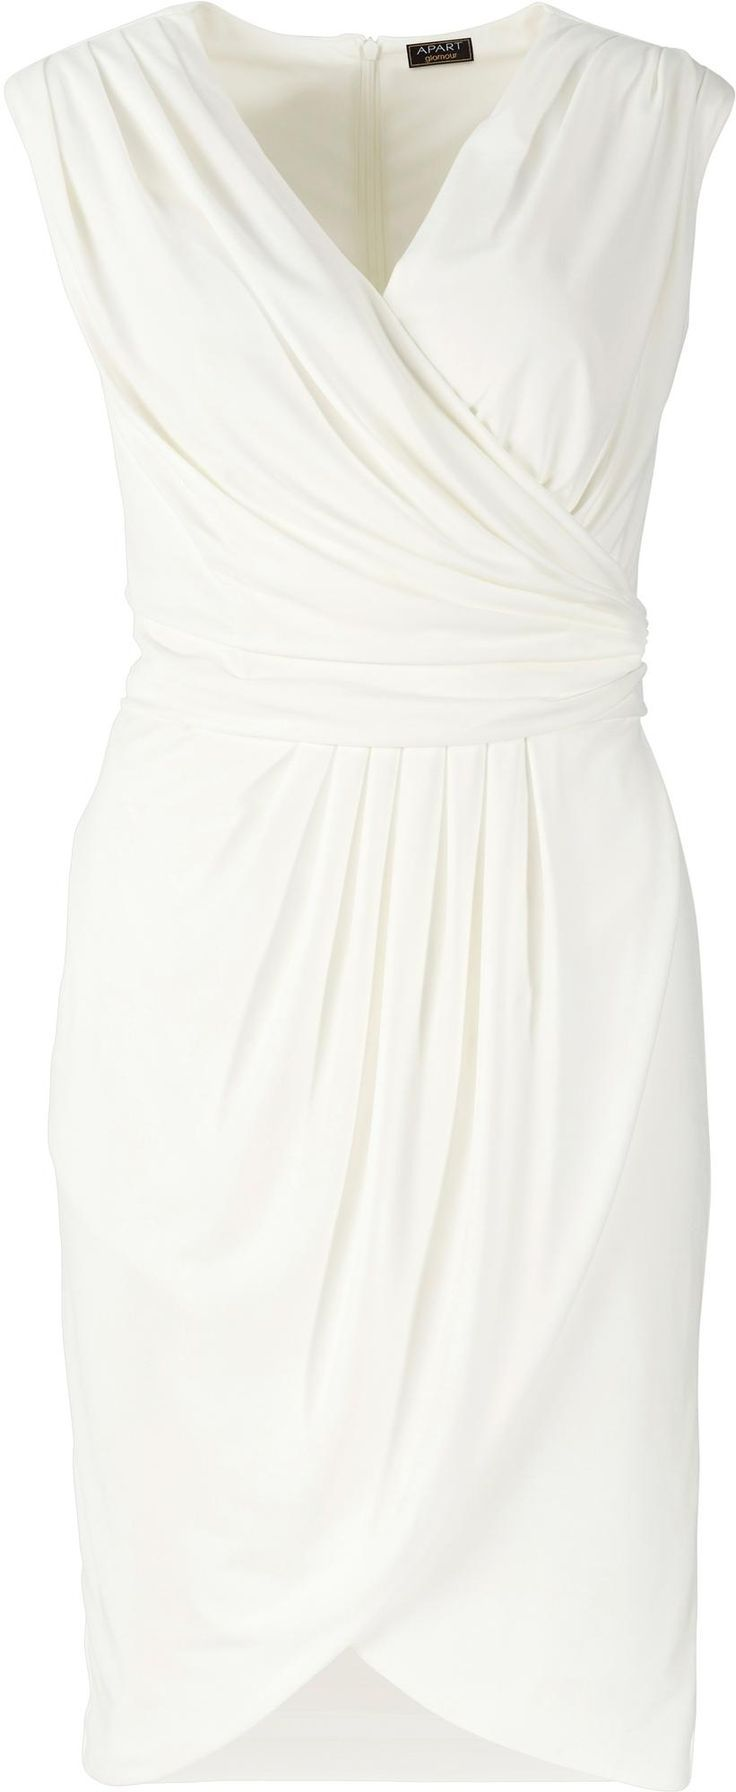 elegant dress for the registry office. wedding dress, wrap